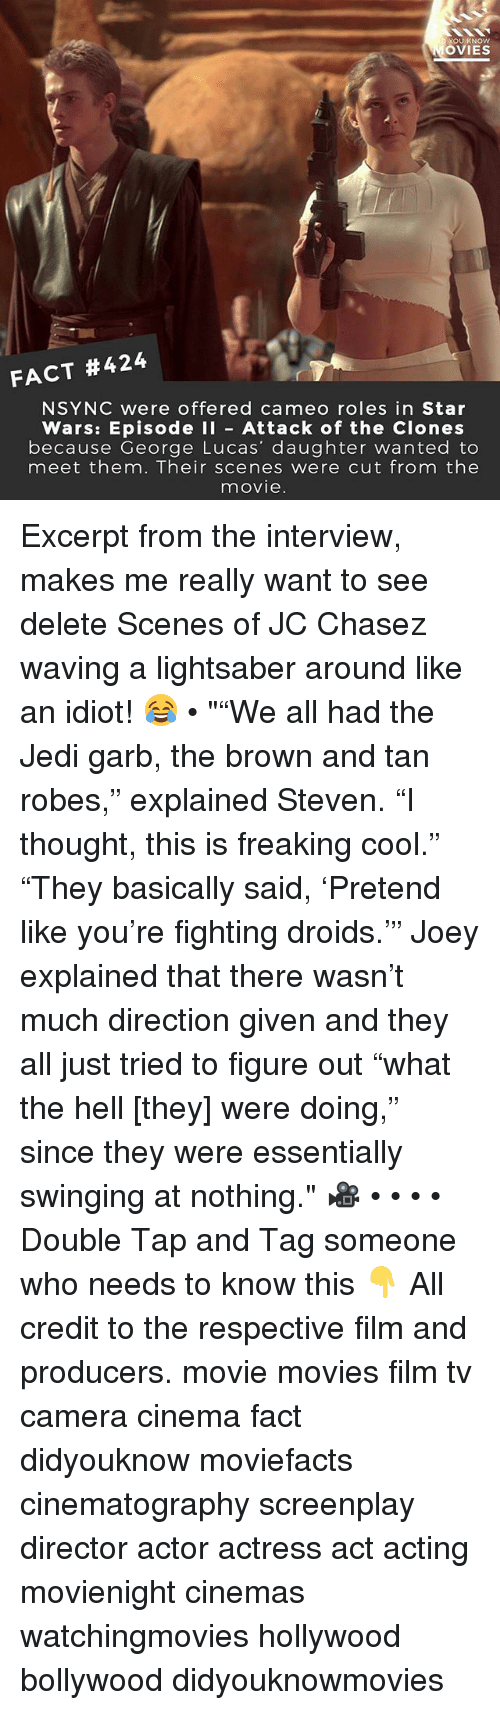 """Tanning: OU KNOW  OVIES  FACT #424  NSYNC were offered cameo roles in Star  Wars: Episode I Attack of the Clones  because George Lucas' daughter wanted to  meet them. Their scenes were cut from the  movie Excerpt from the interview, makes me really want to see delete Scenes of JC Chasez waving a lightsaber around like an idiot! 😂 • """"""""We all had the Jedi garb, the brown and tan robes,"""" explained Steven. """"I thought, this is freaking cool."""" """"They basically said, 'Pretend like you're fighting droids.'"""" Joey explained that there wasn't much direction given and they all just tried to figure out """"what the hell [they] were doing,"""" since they were essentially swinging at nothing."""" 🎥 • • • • Double Tap and Tag someone who needs to know this 👇 All credit to the respective film and producers. movie movies film tv camera cinema fact didyouknow moviefacts cinematography screenplay director actor actress act acting movienight cinemas watchingmovies hollywood bollywood didyouknowmovies"""